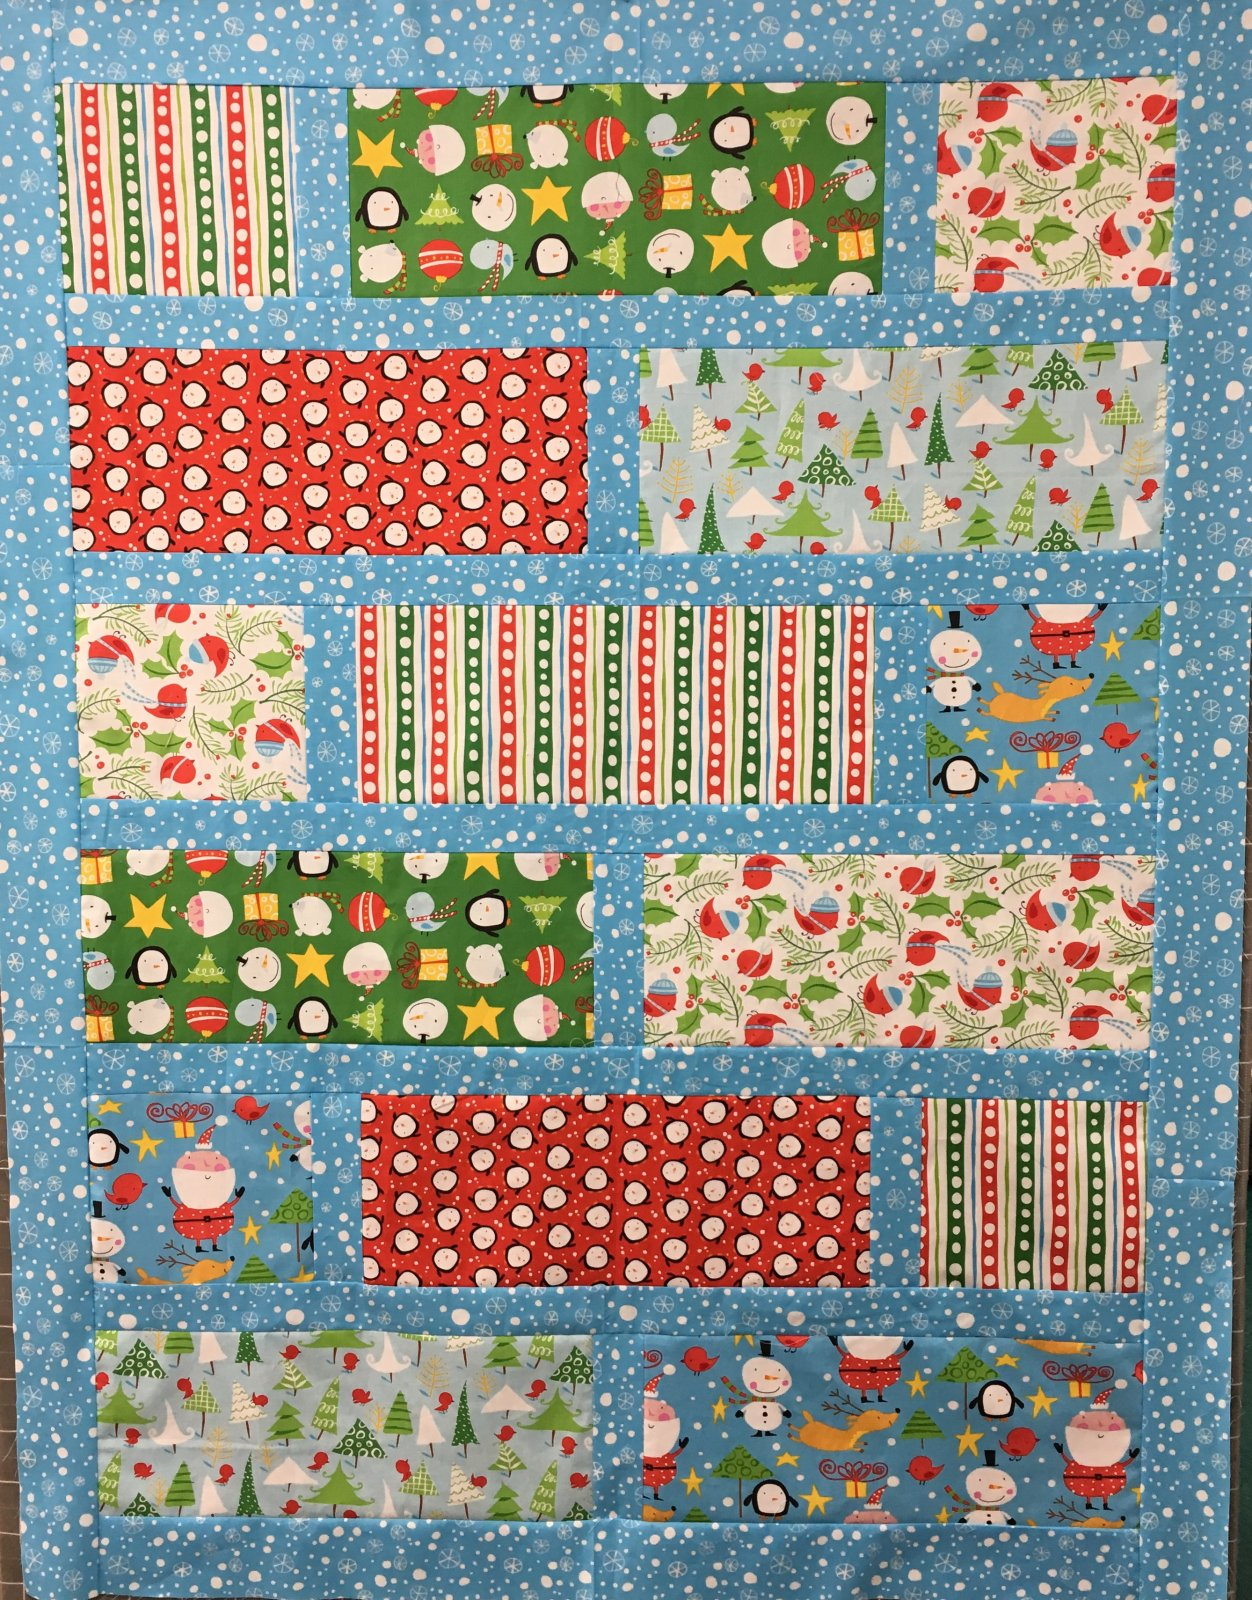 Merry quilt kit 47x 61